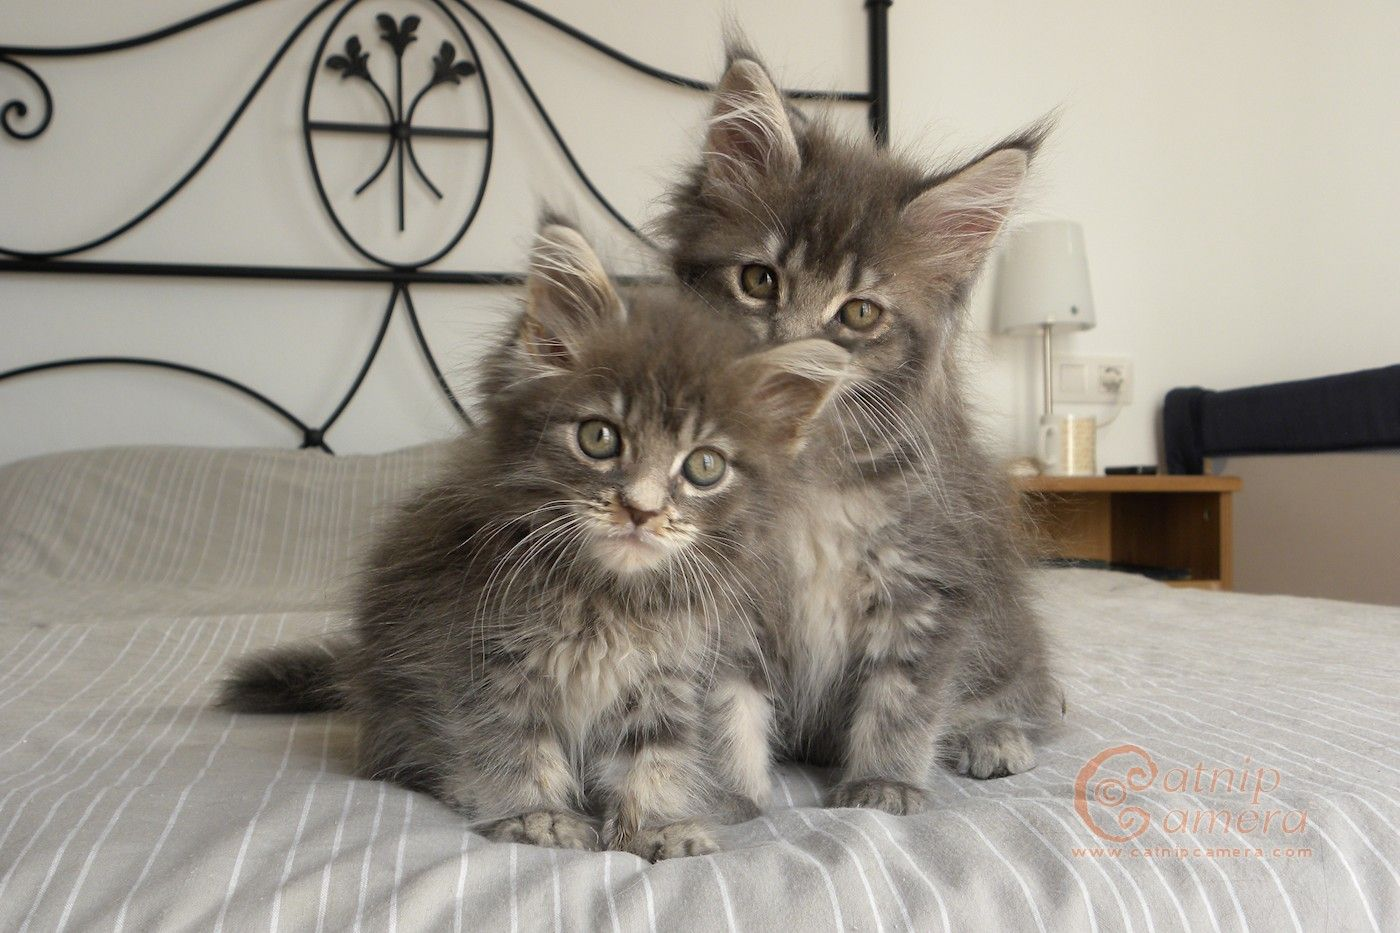 Maine coon kittens for sale in wichita kansas